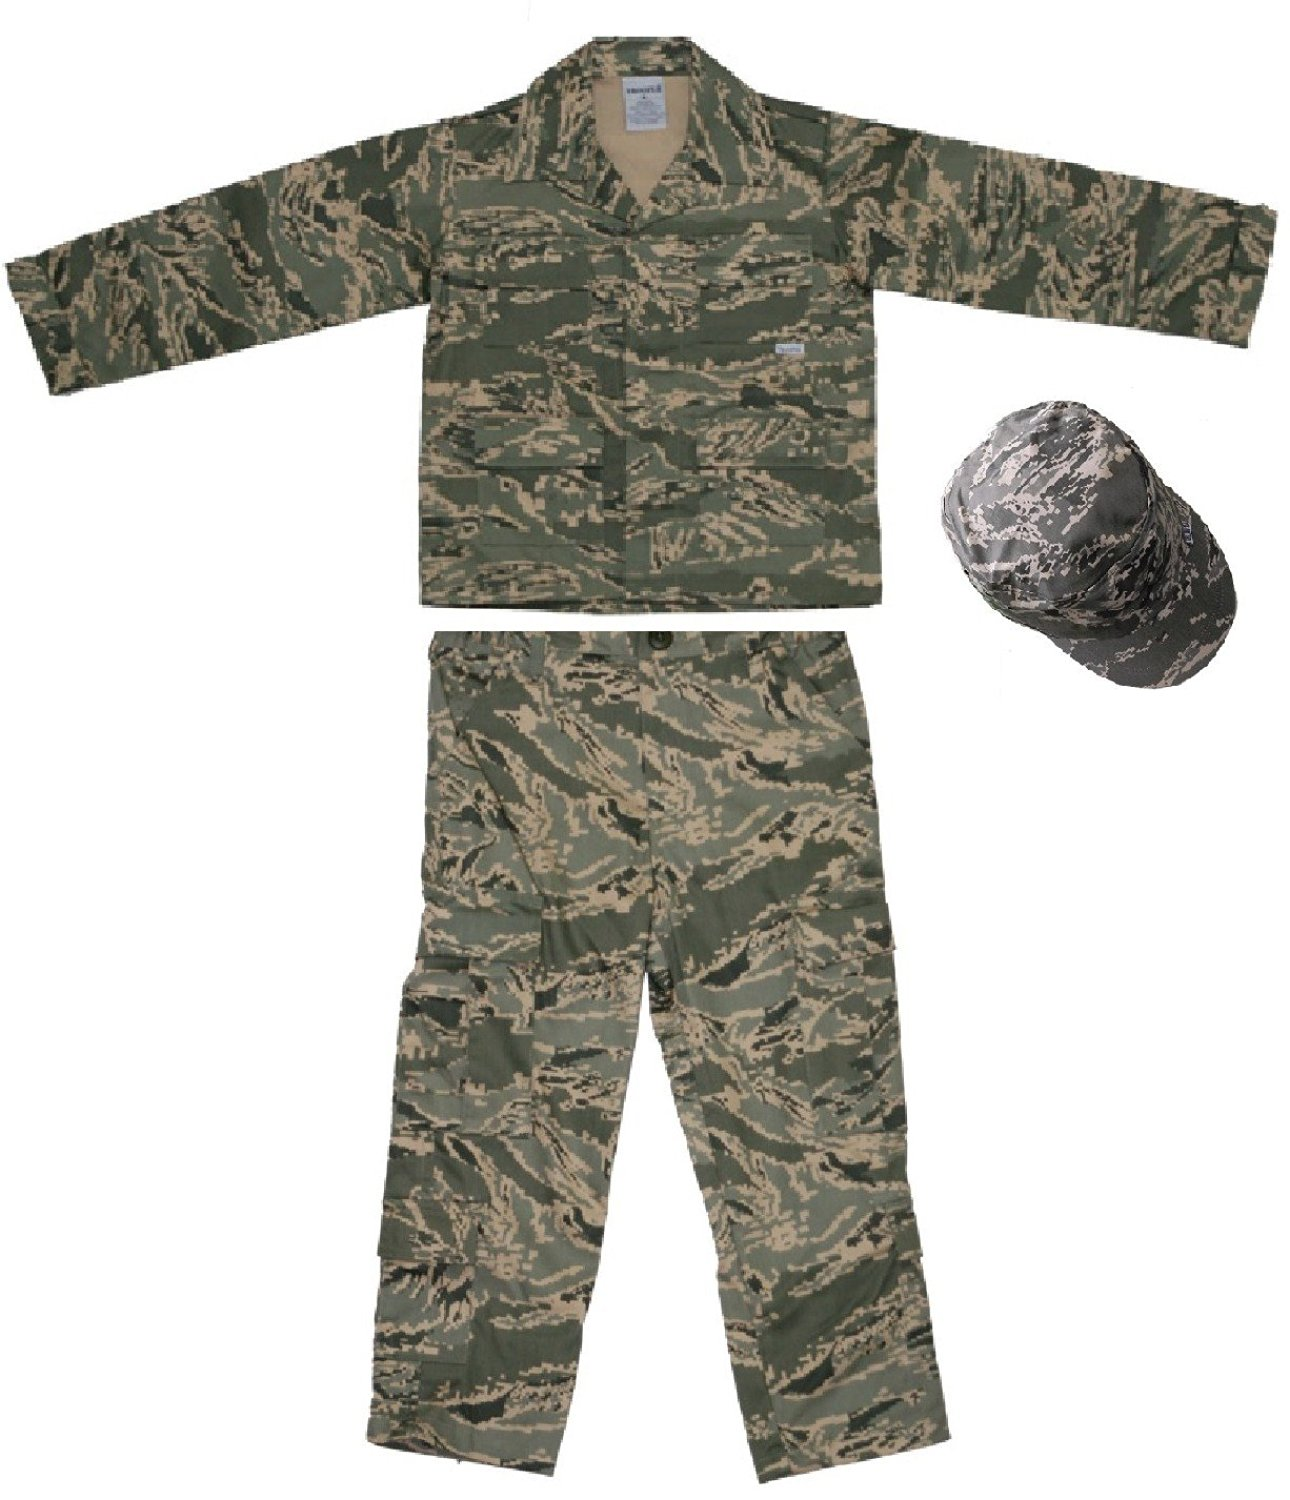 1ac05e6643221 Get Quotations · USAF Kids ABU US Air Force Authentic Military Battle  Uniform 3 pc Small 6-8